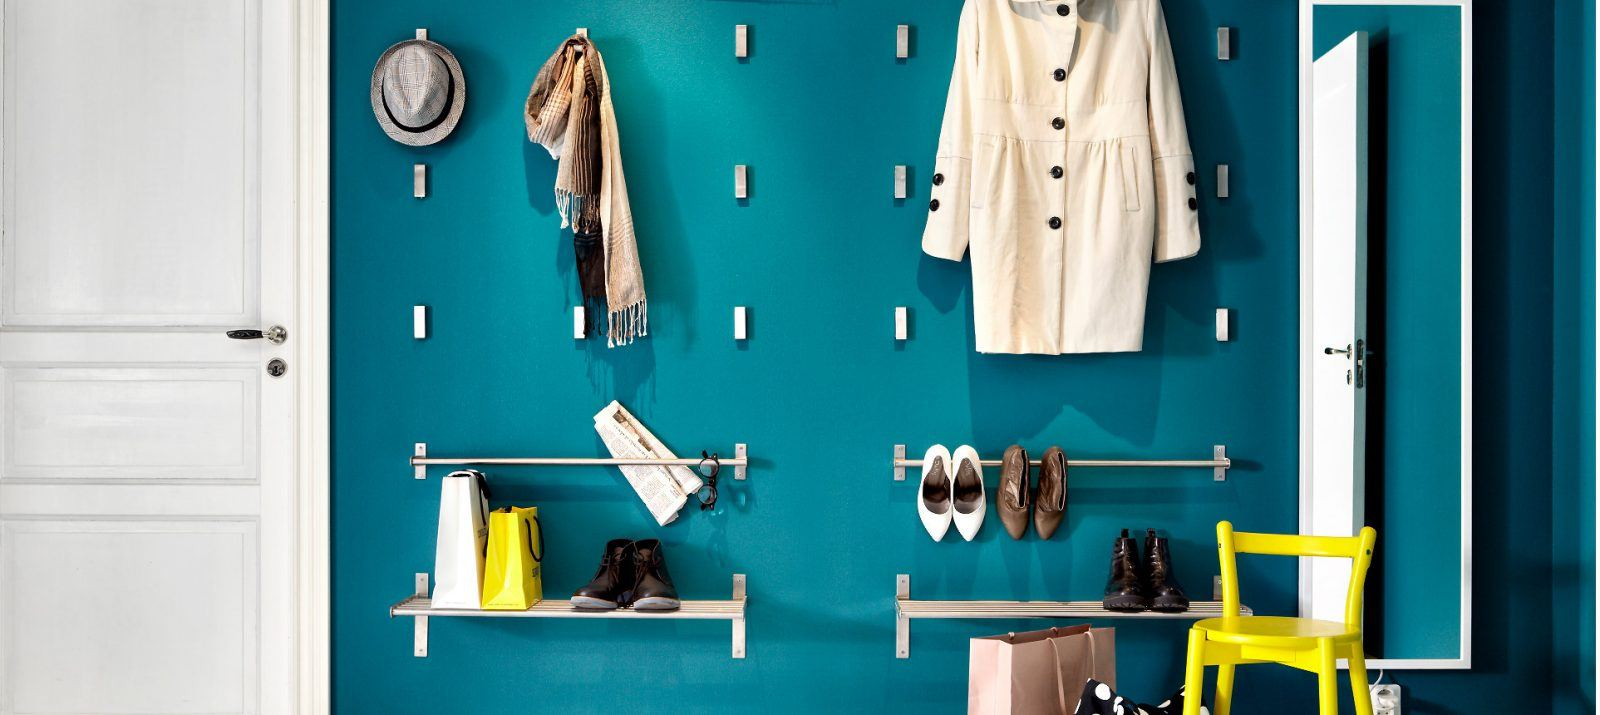 Tips And Storage Ideas For Couples Living Together In